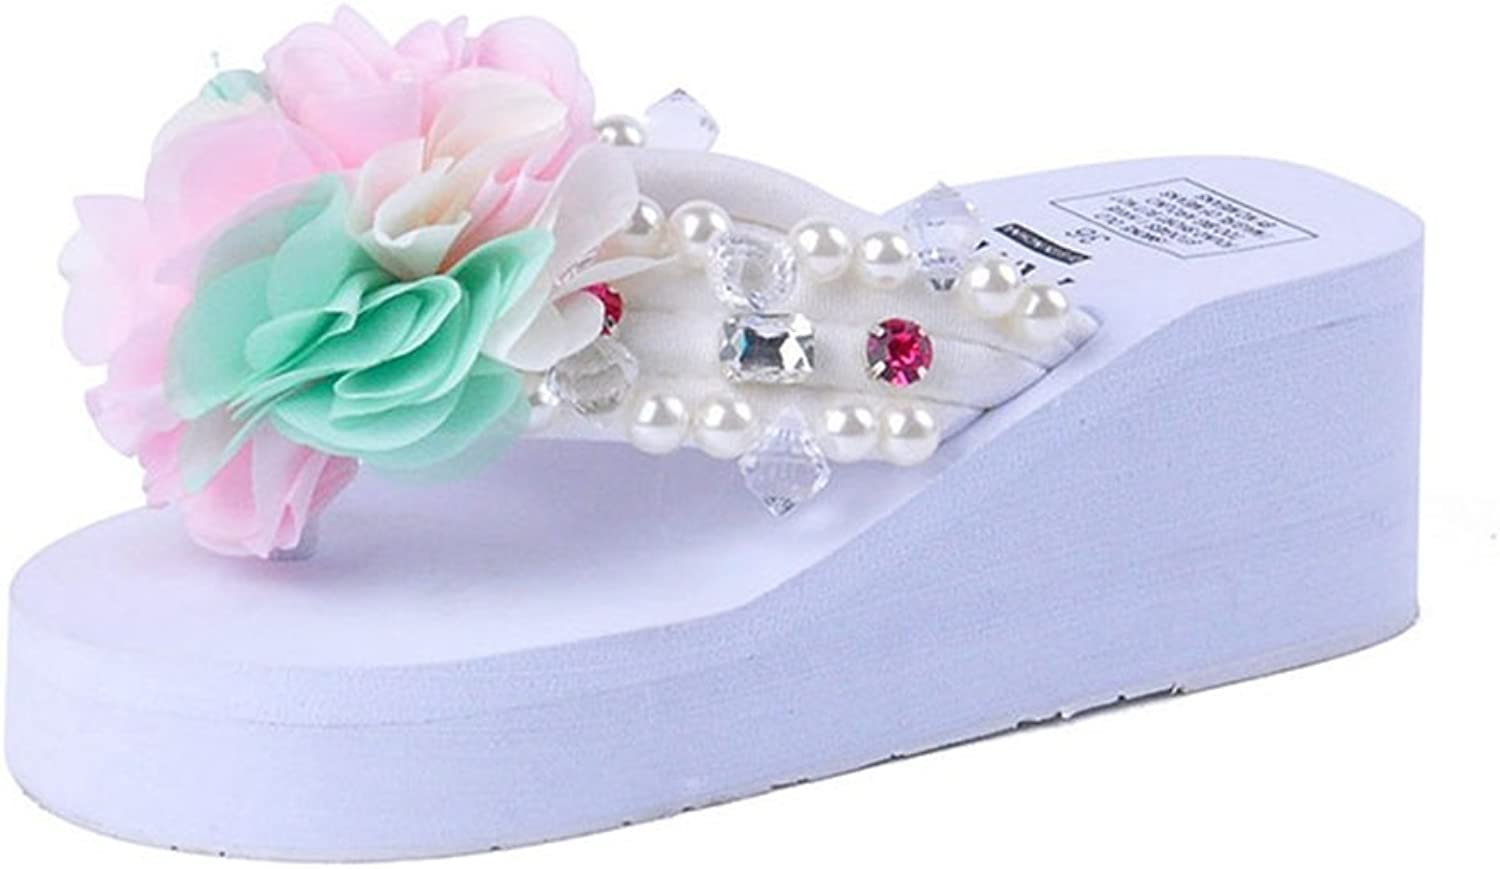 U-MAC Womens Flip Flop Thongs Wedge Sandals Rhinestone Mid Heel Flower Summer Beach Slippers